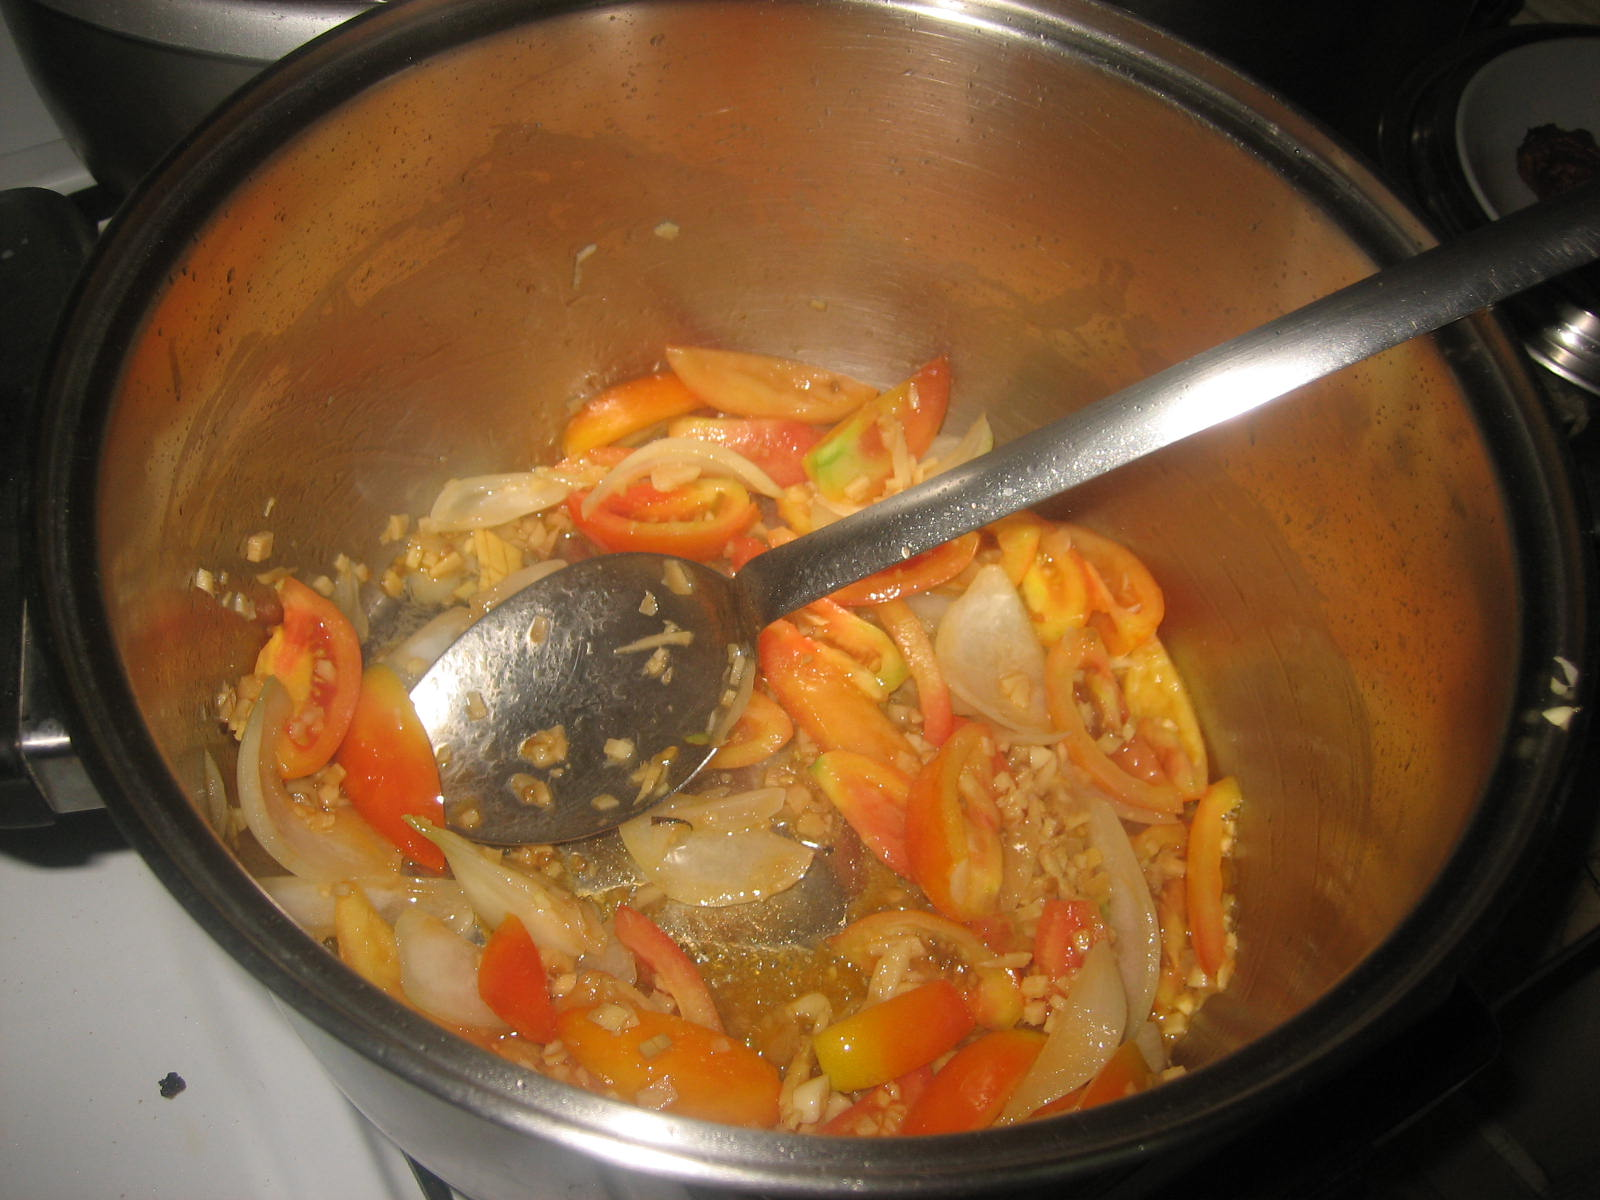 Sauteing The Vegetables After Cooking